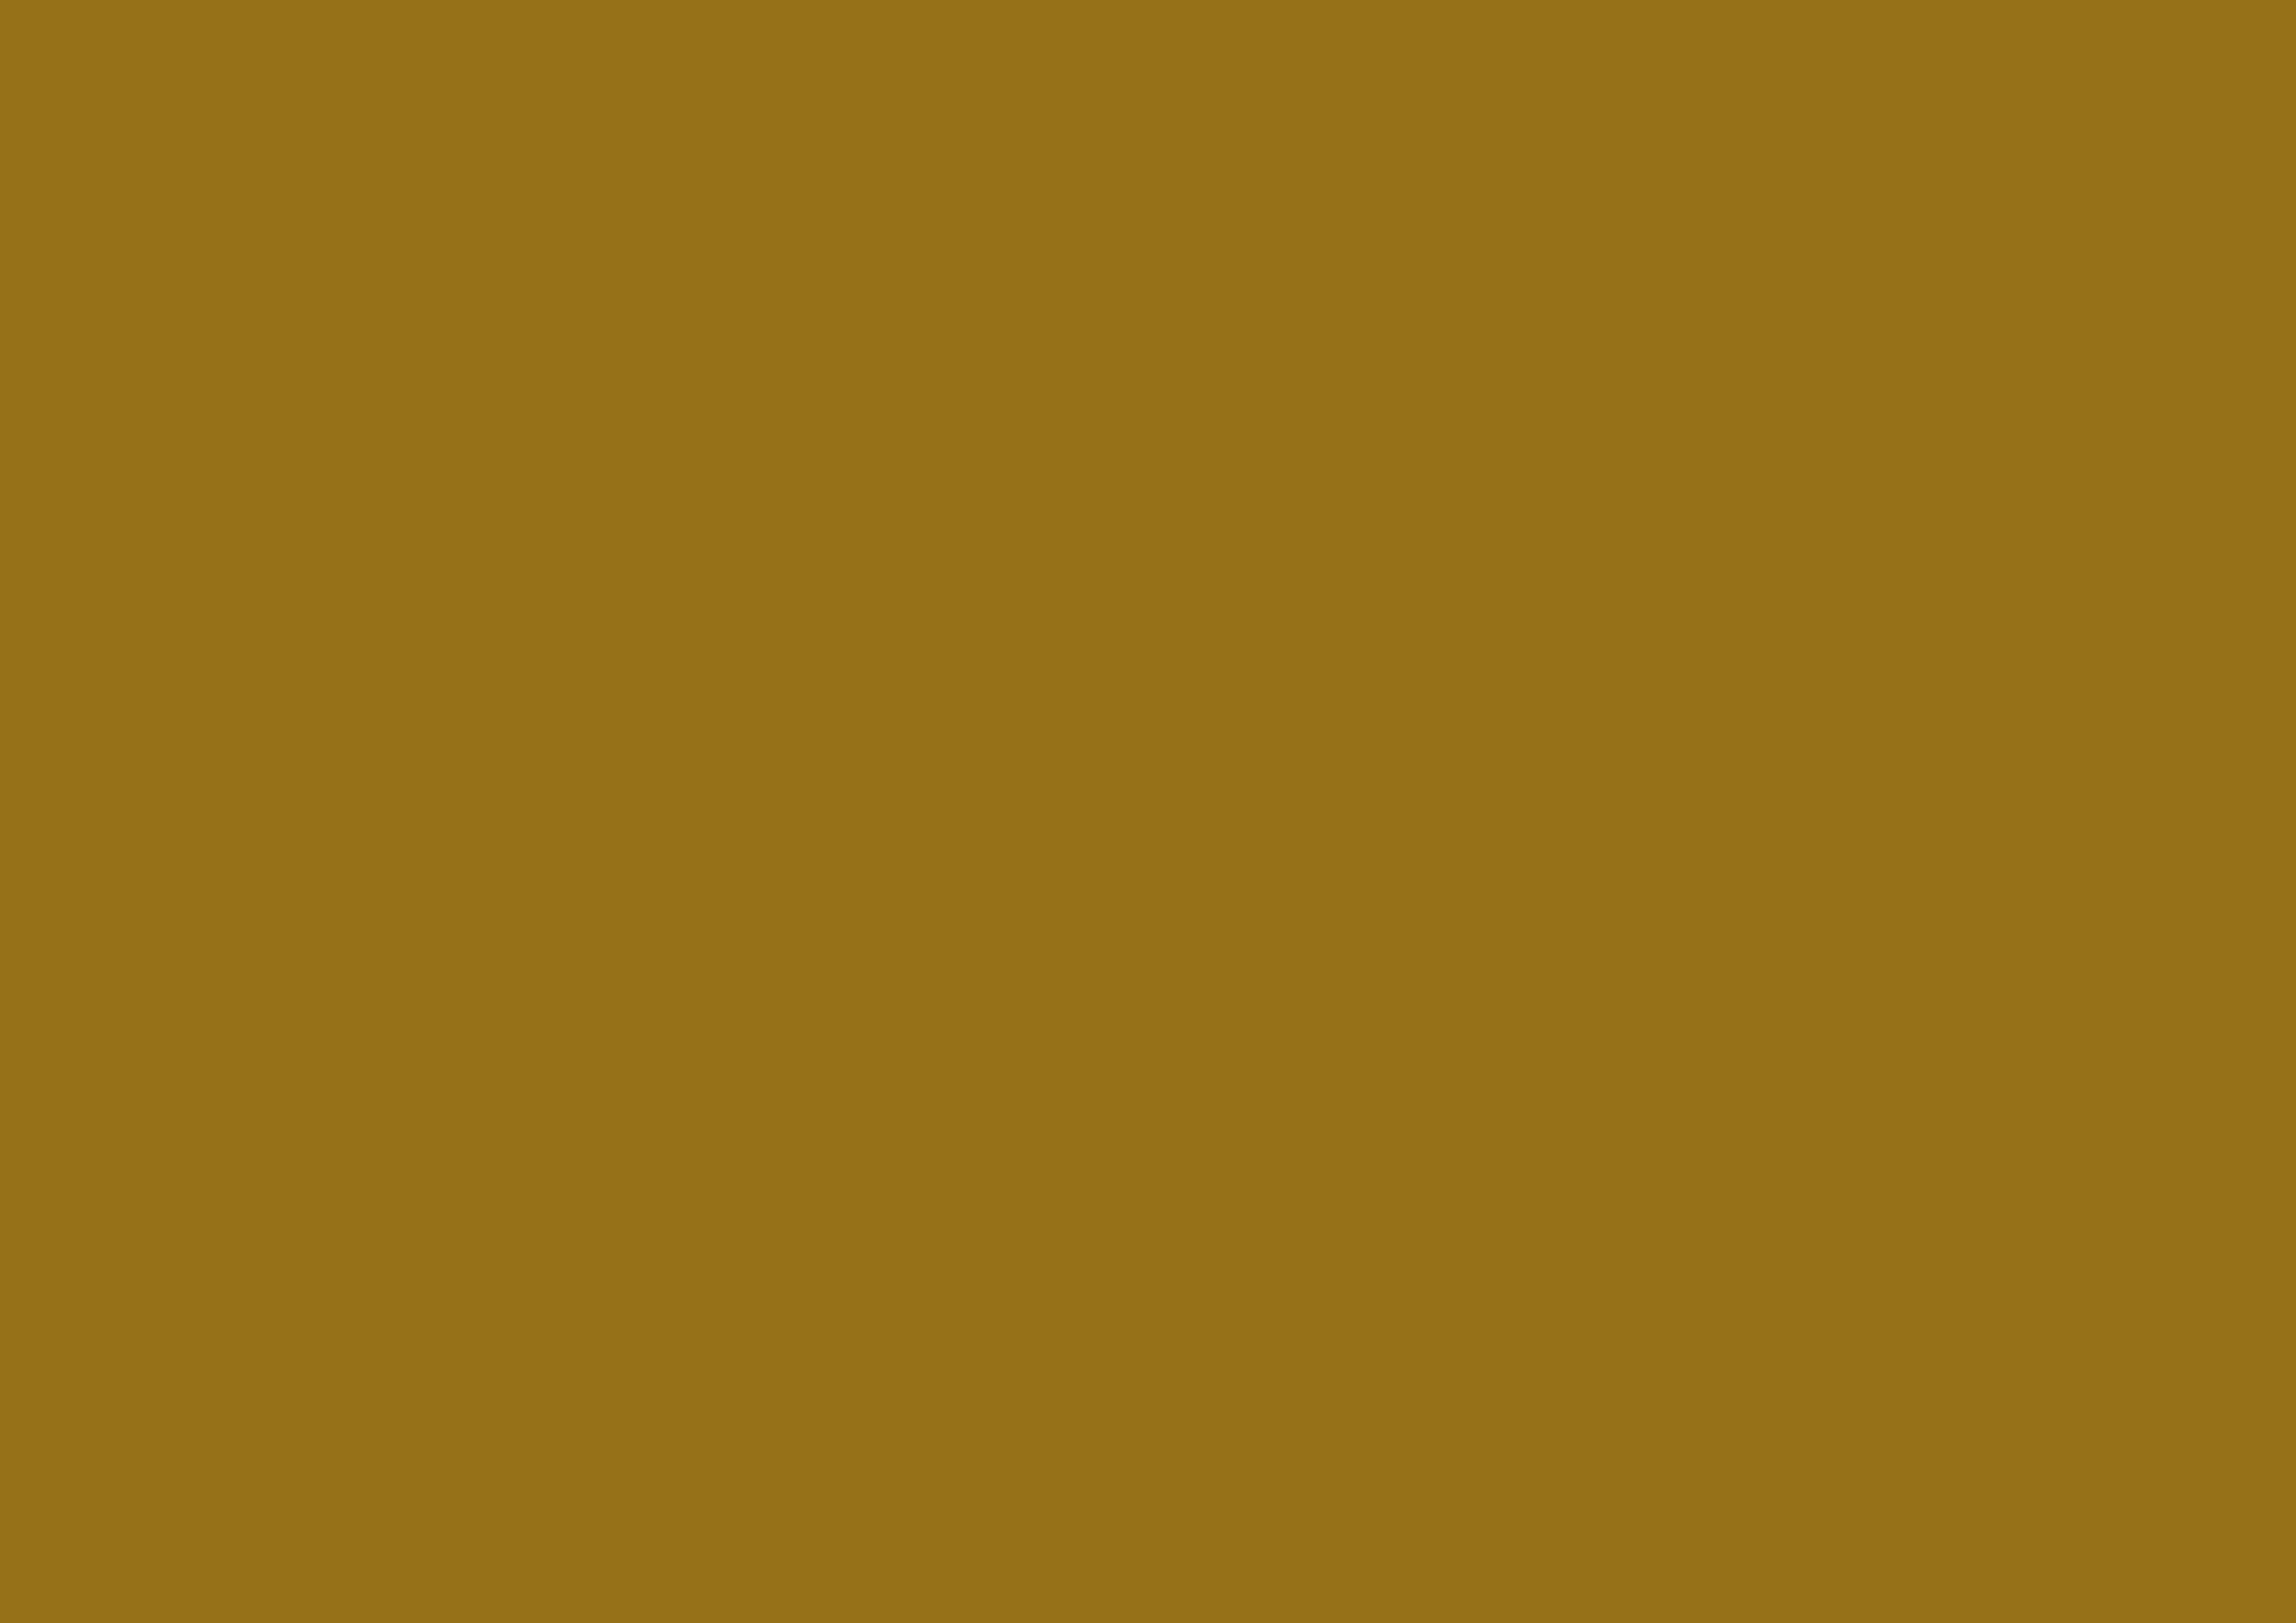 3508x2480 Sandy Taupe Solid Color Background